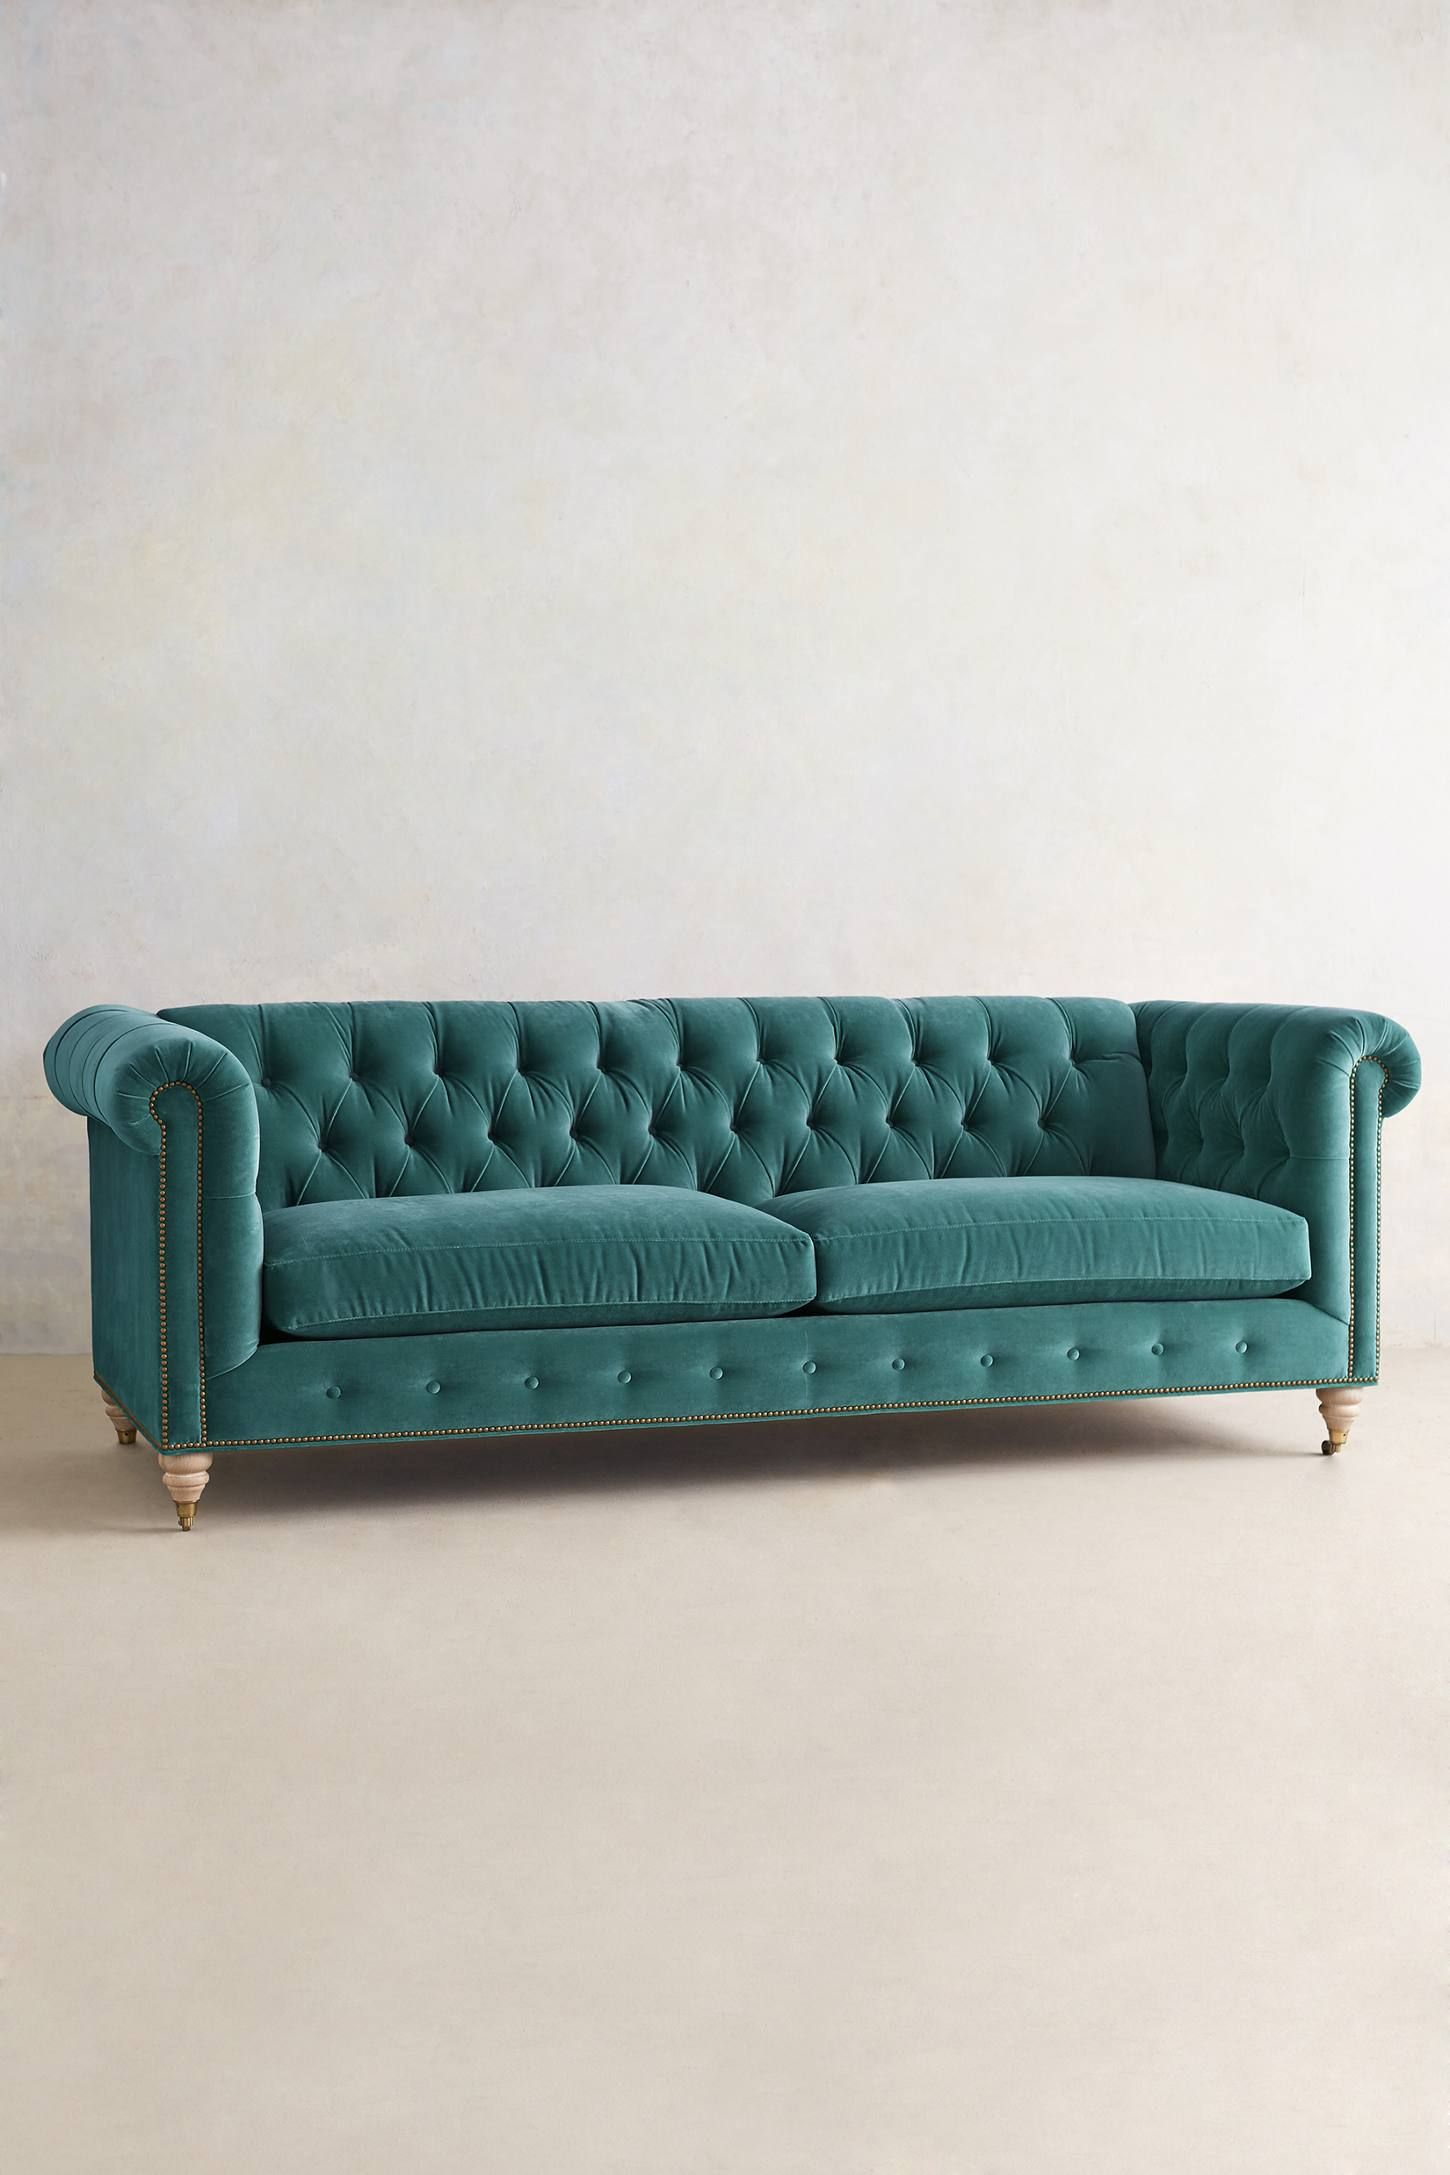 Lyre Chesterfield Sofa Teal anthropologie